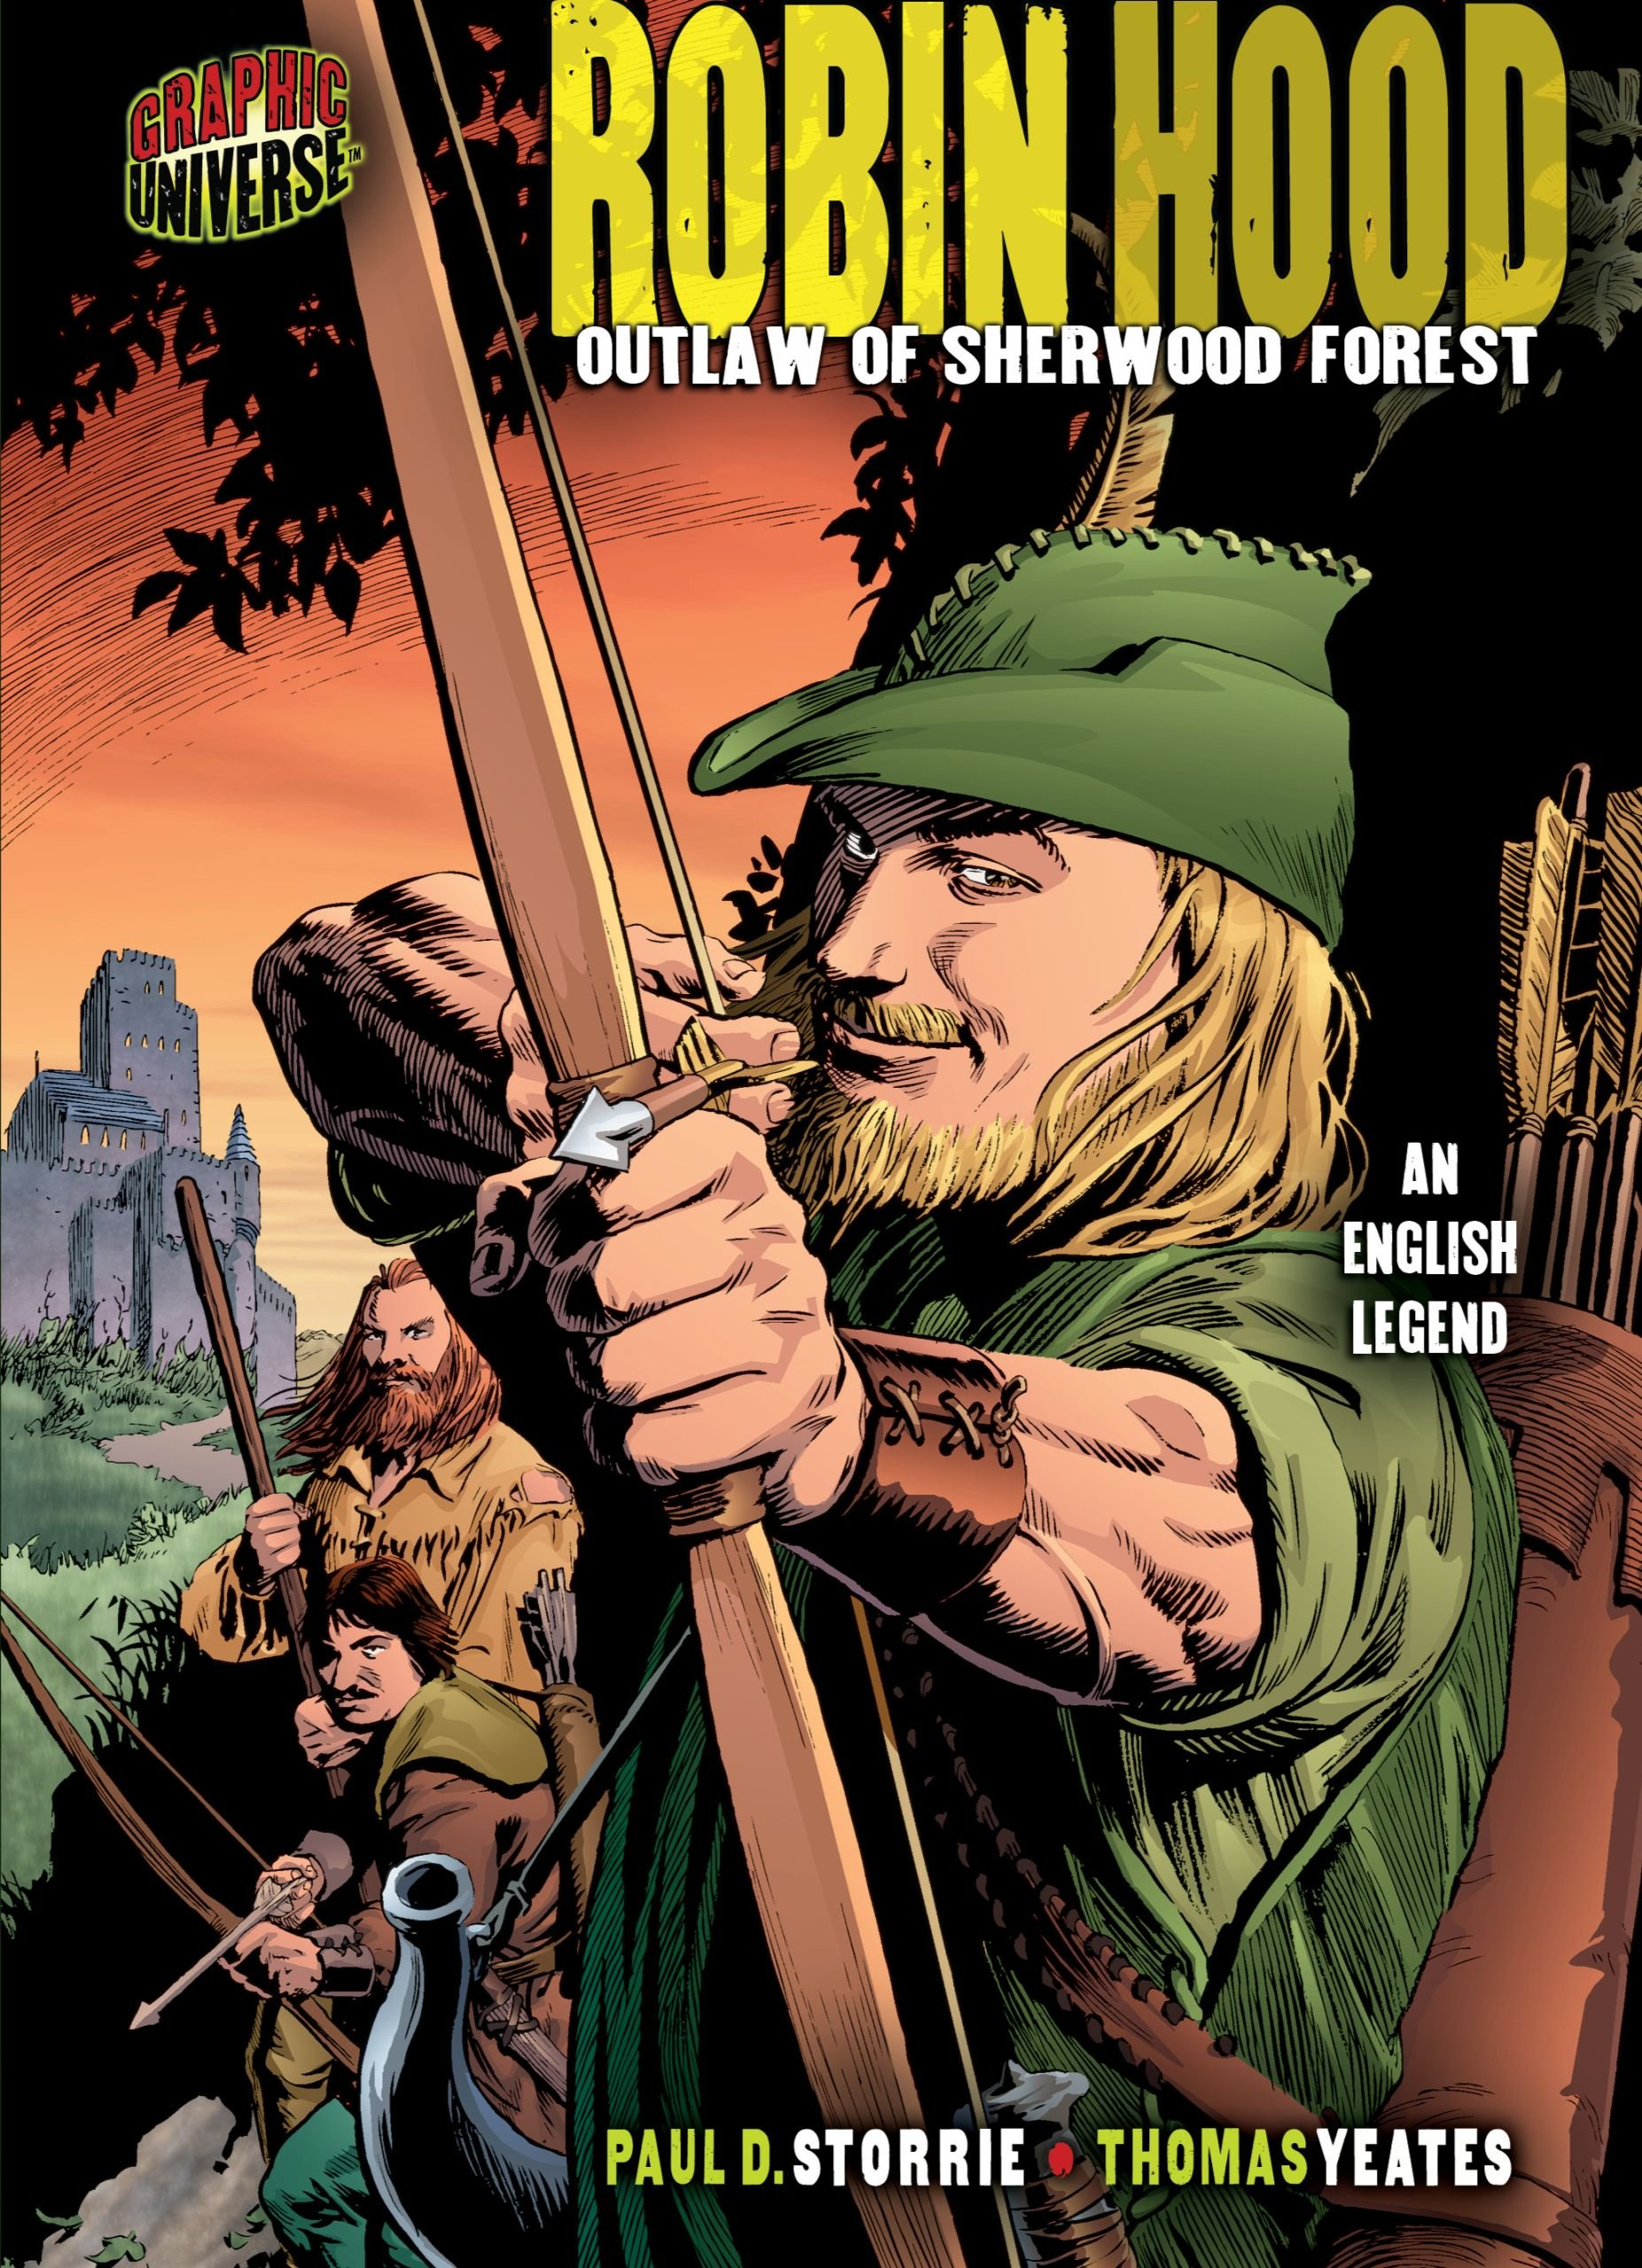 Robin Hood: Outlaw of Sherwood Forest [An English Legend] (Graphic Myths and Legends)